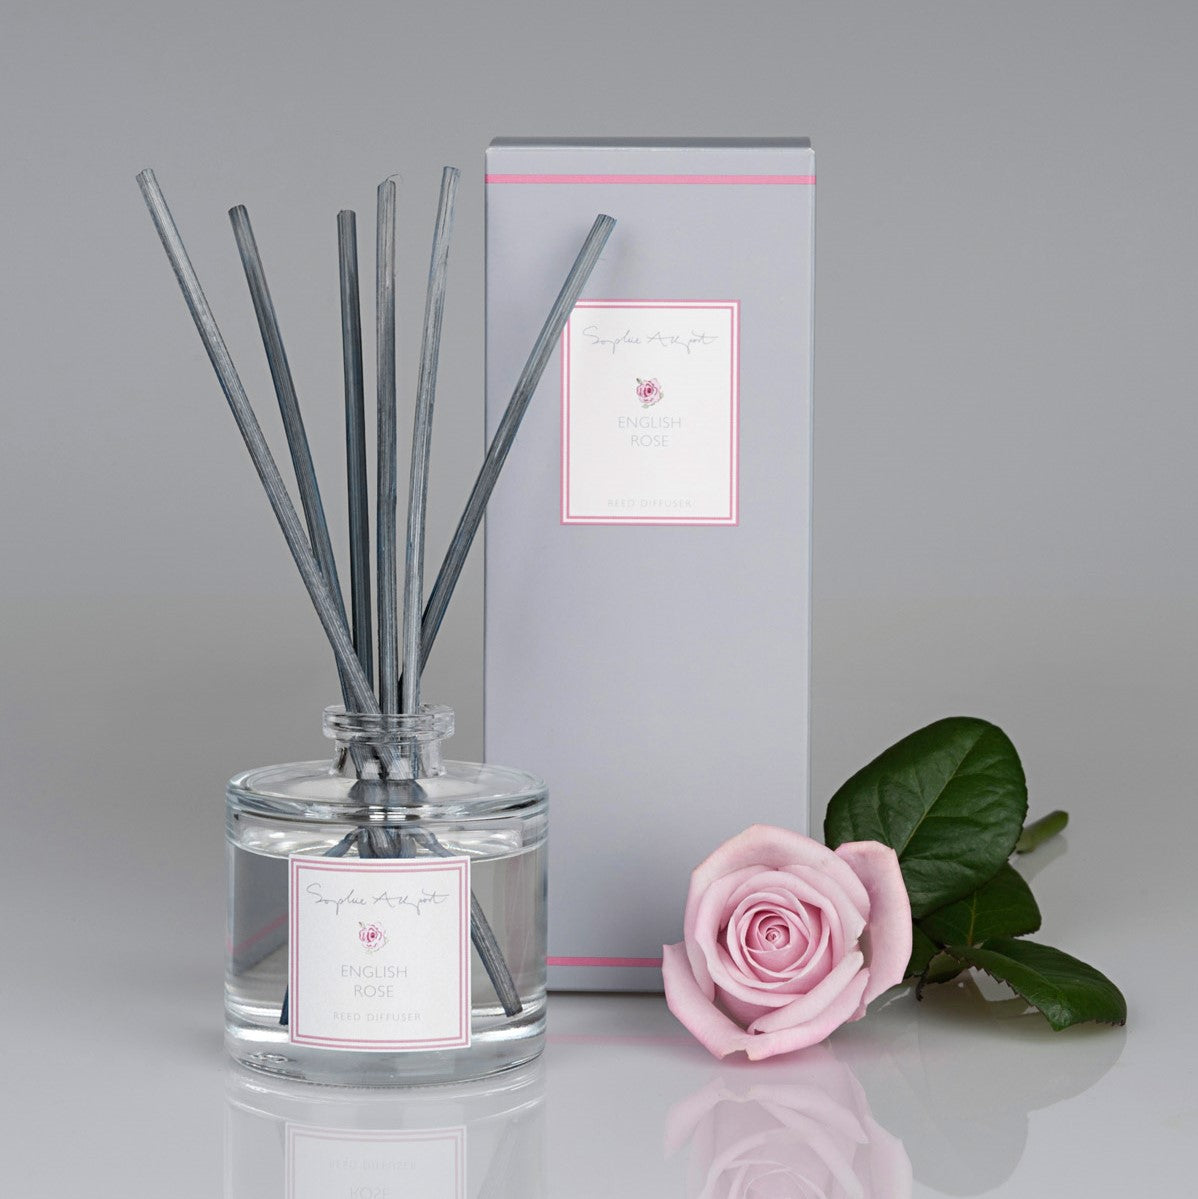 English Rose Scented Reed Diffuser